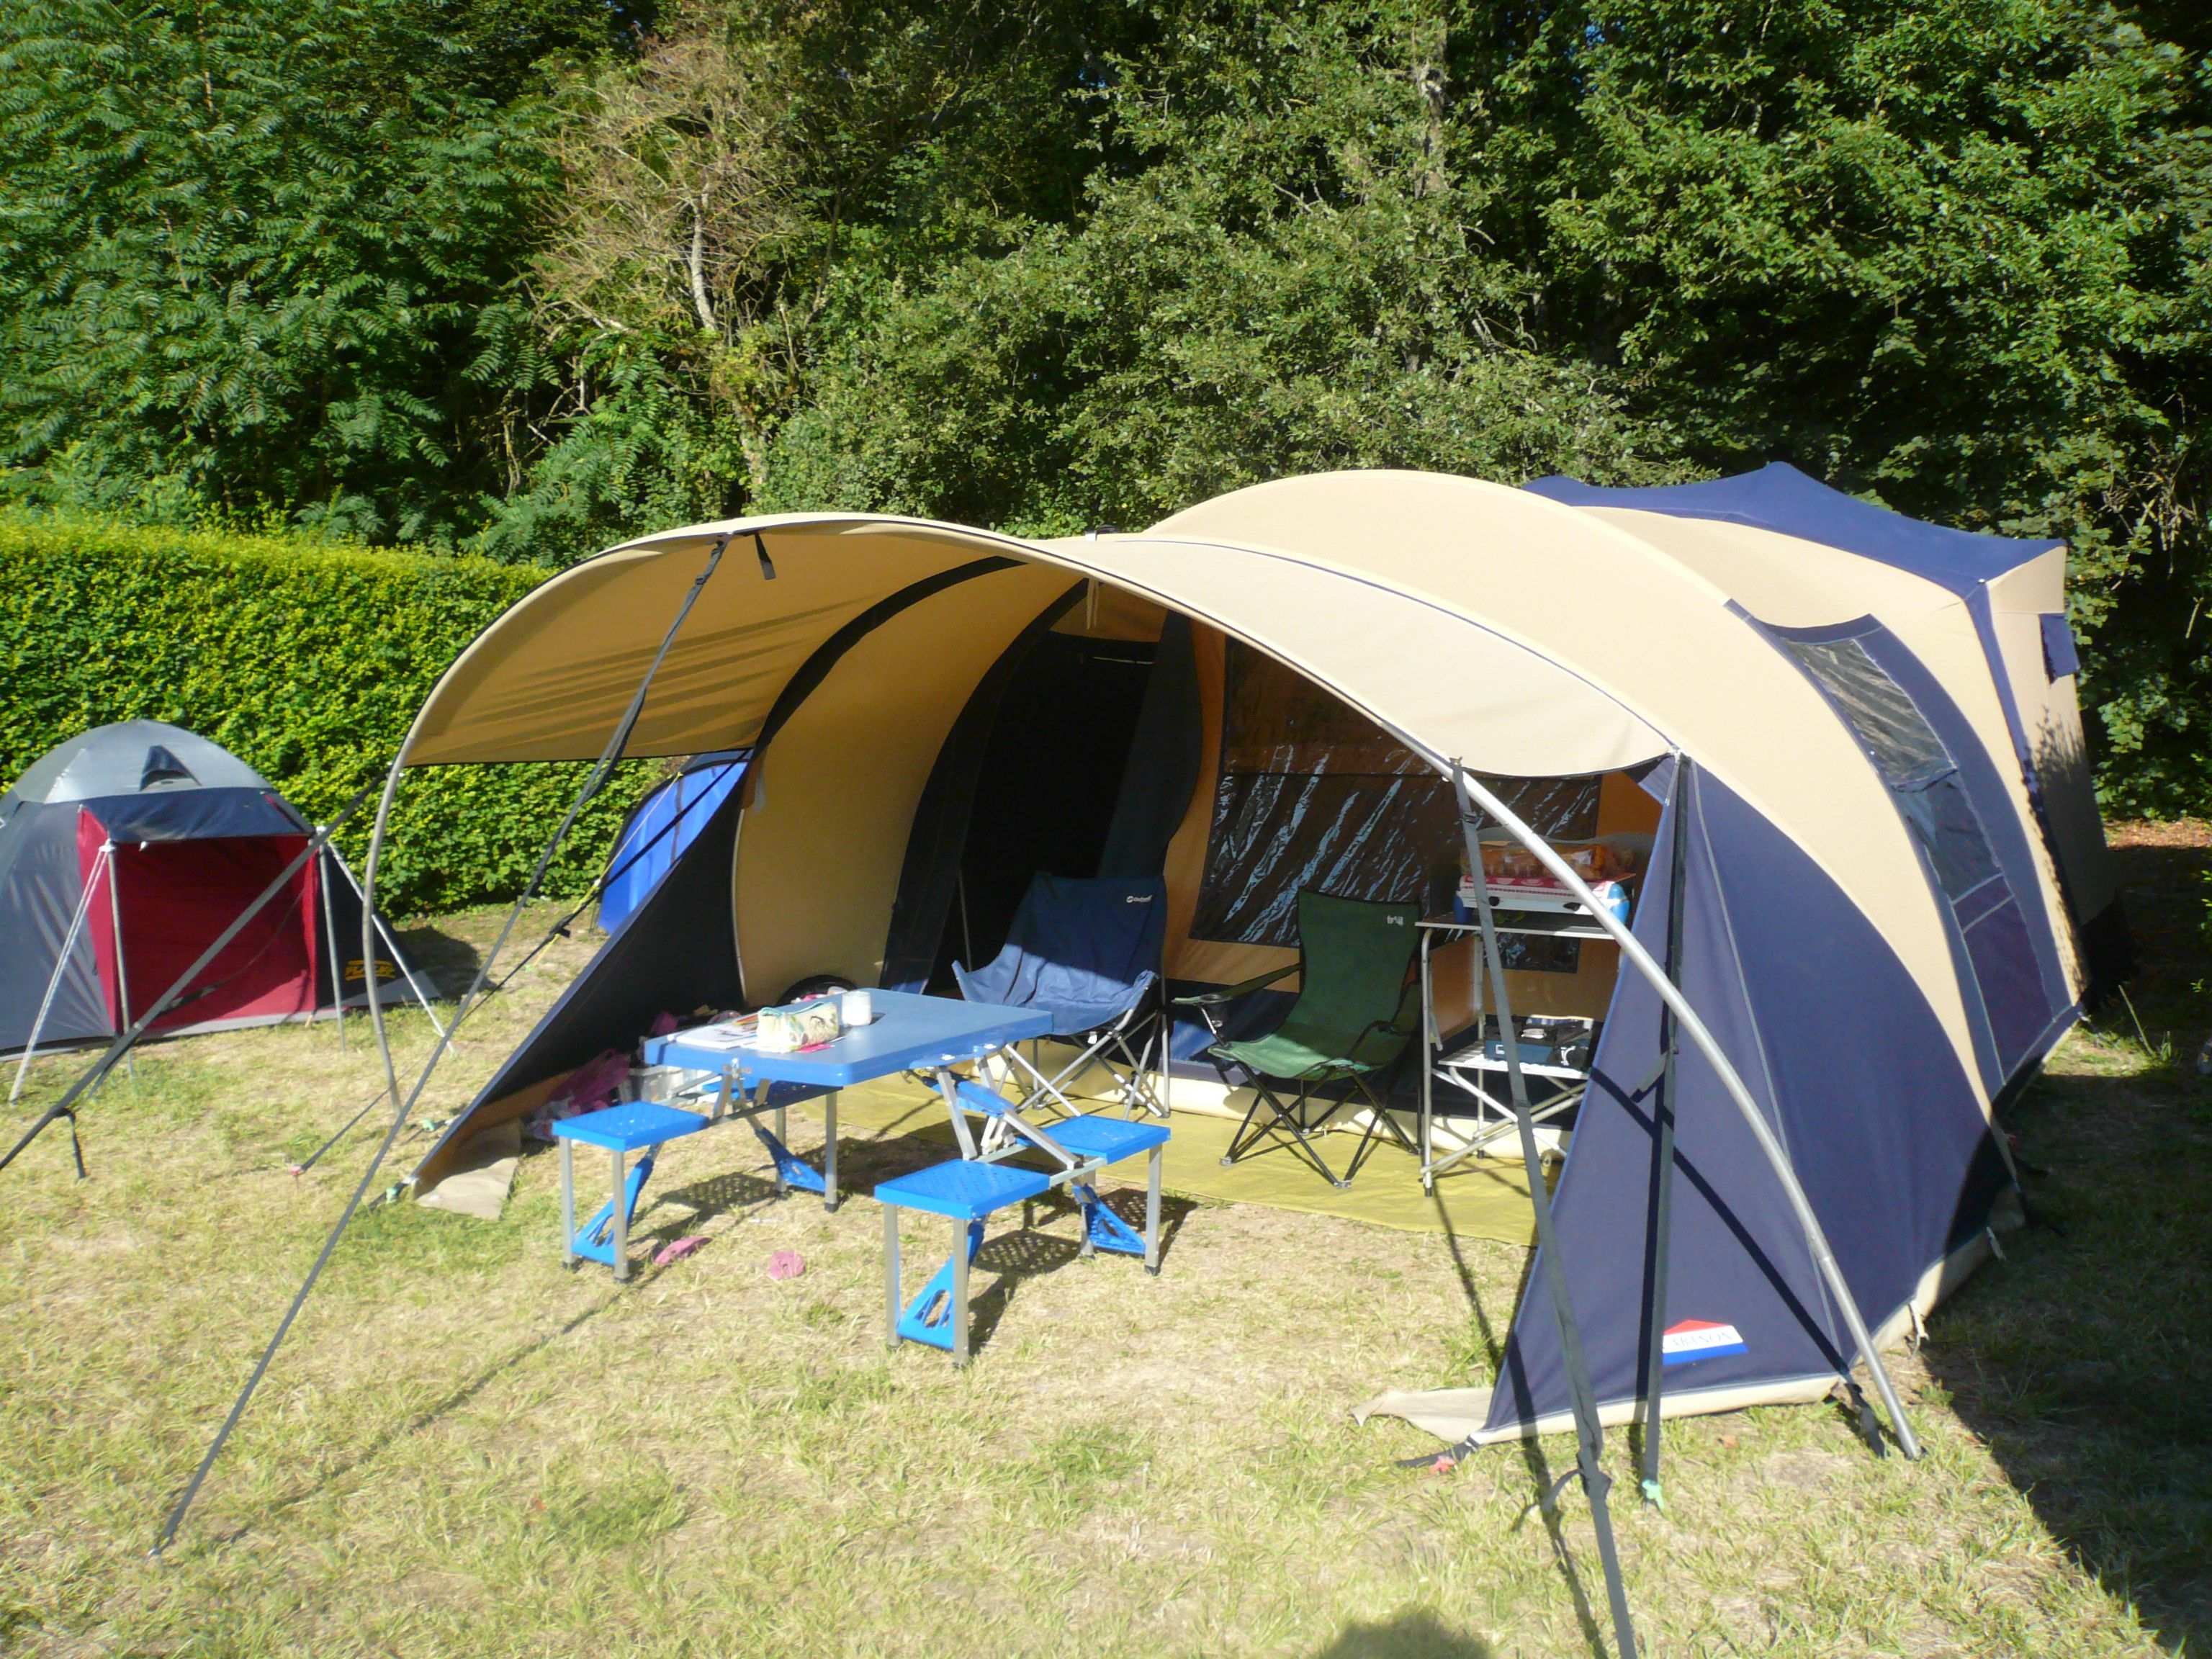 cabanon stratos.c&ing In central france. & cabanon stratos.camping In central france.   cabanon tent ...